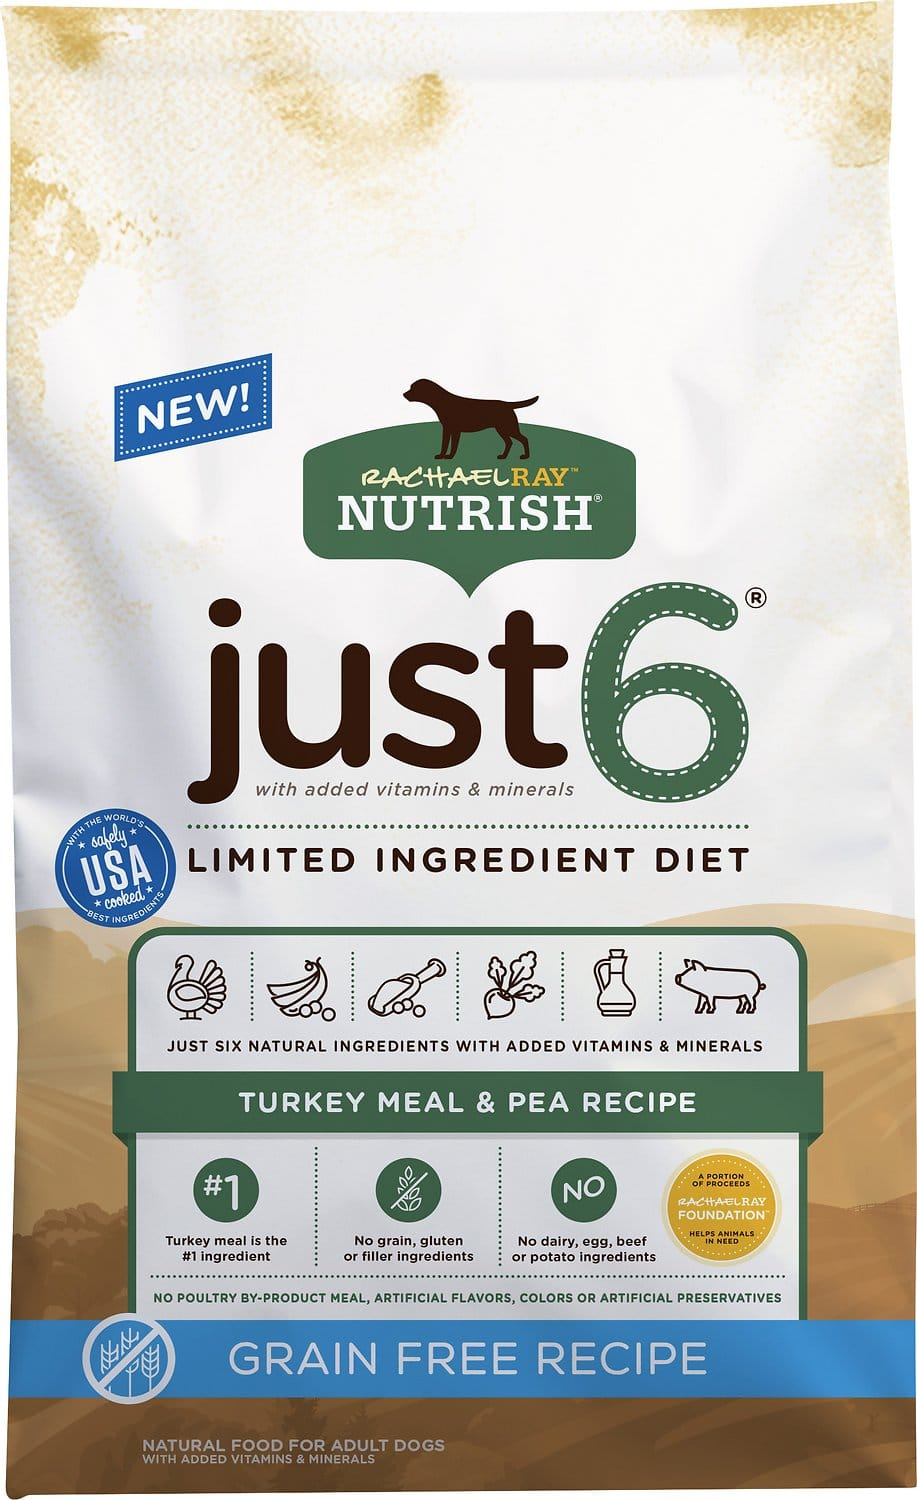 24-Lbs Rachael Ray Nutrish Just 6 Natural Grain-Free Limited Ingredient Diet Dry Dog Food $17.10 or less w/ Autoship + Free Shipping $49+